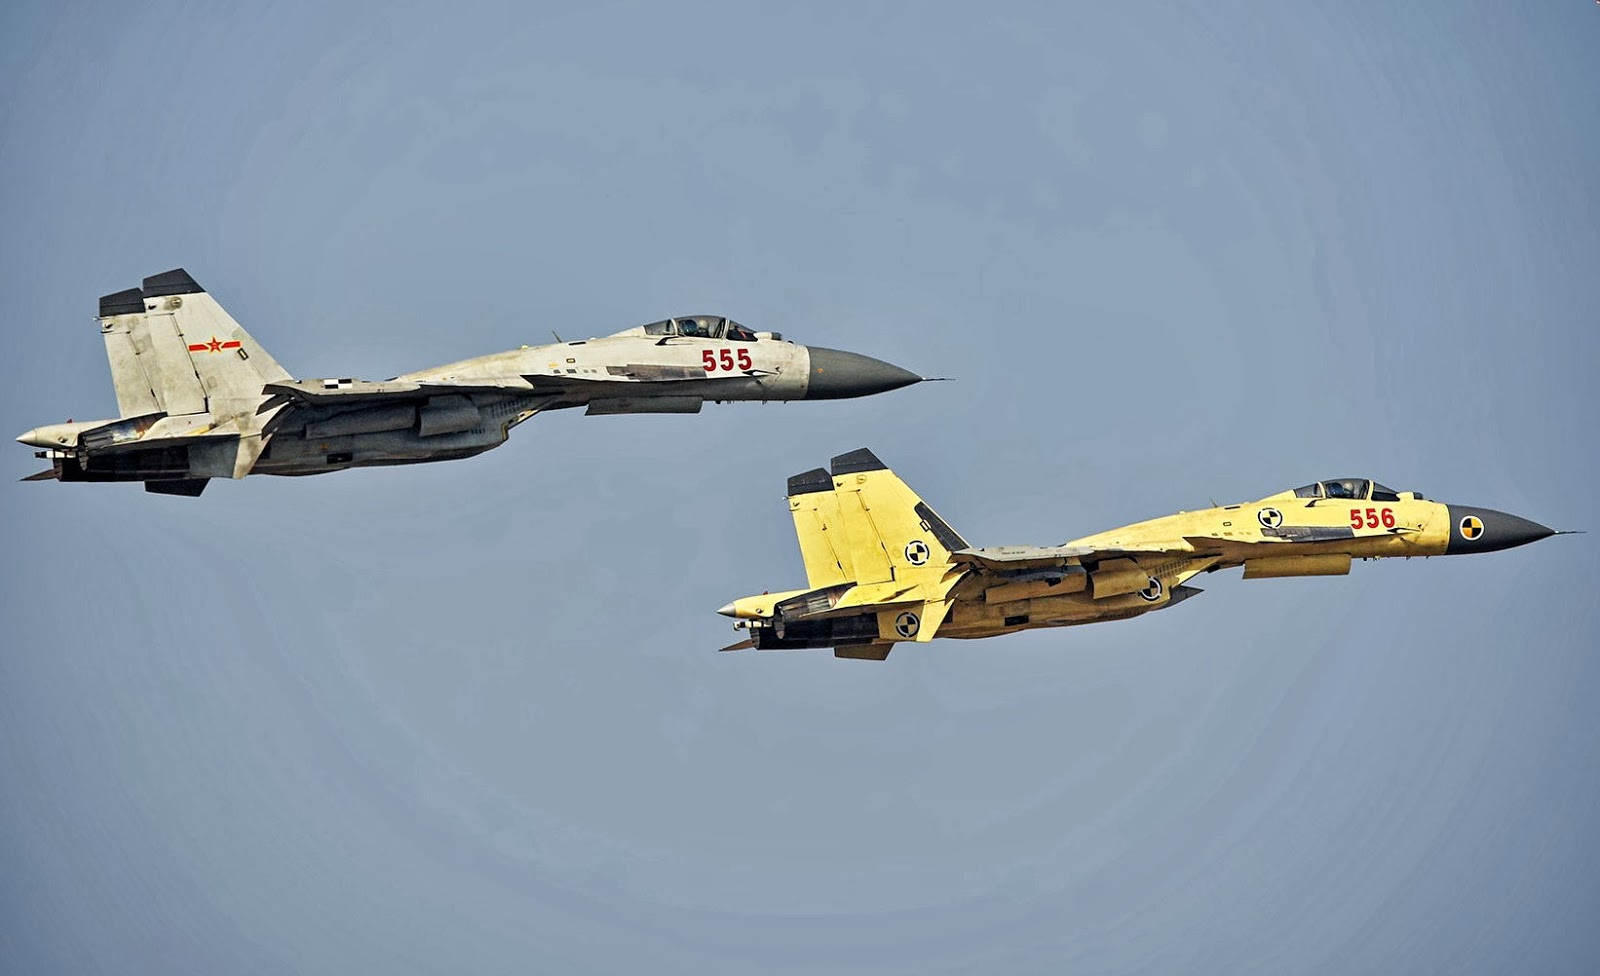 Prototypes of J-15 Flying Shark Naval Fighter Aircraft ...